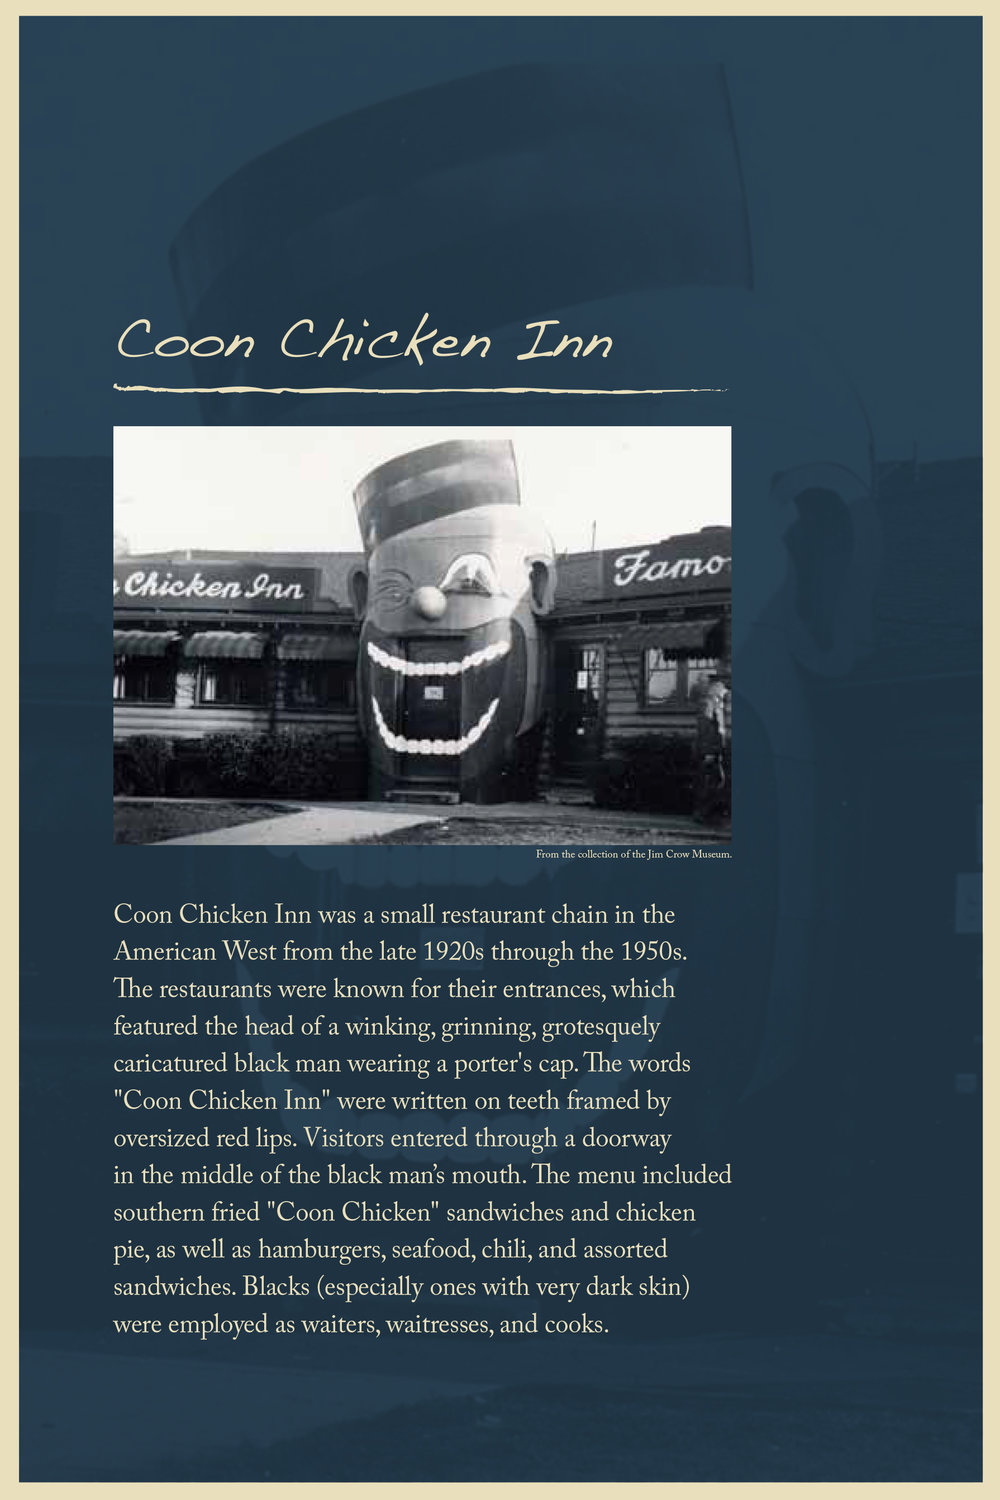 Coon Chicken Inn.jpg